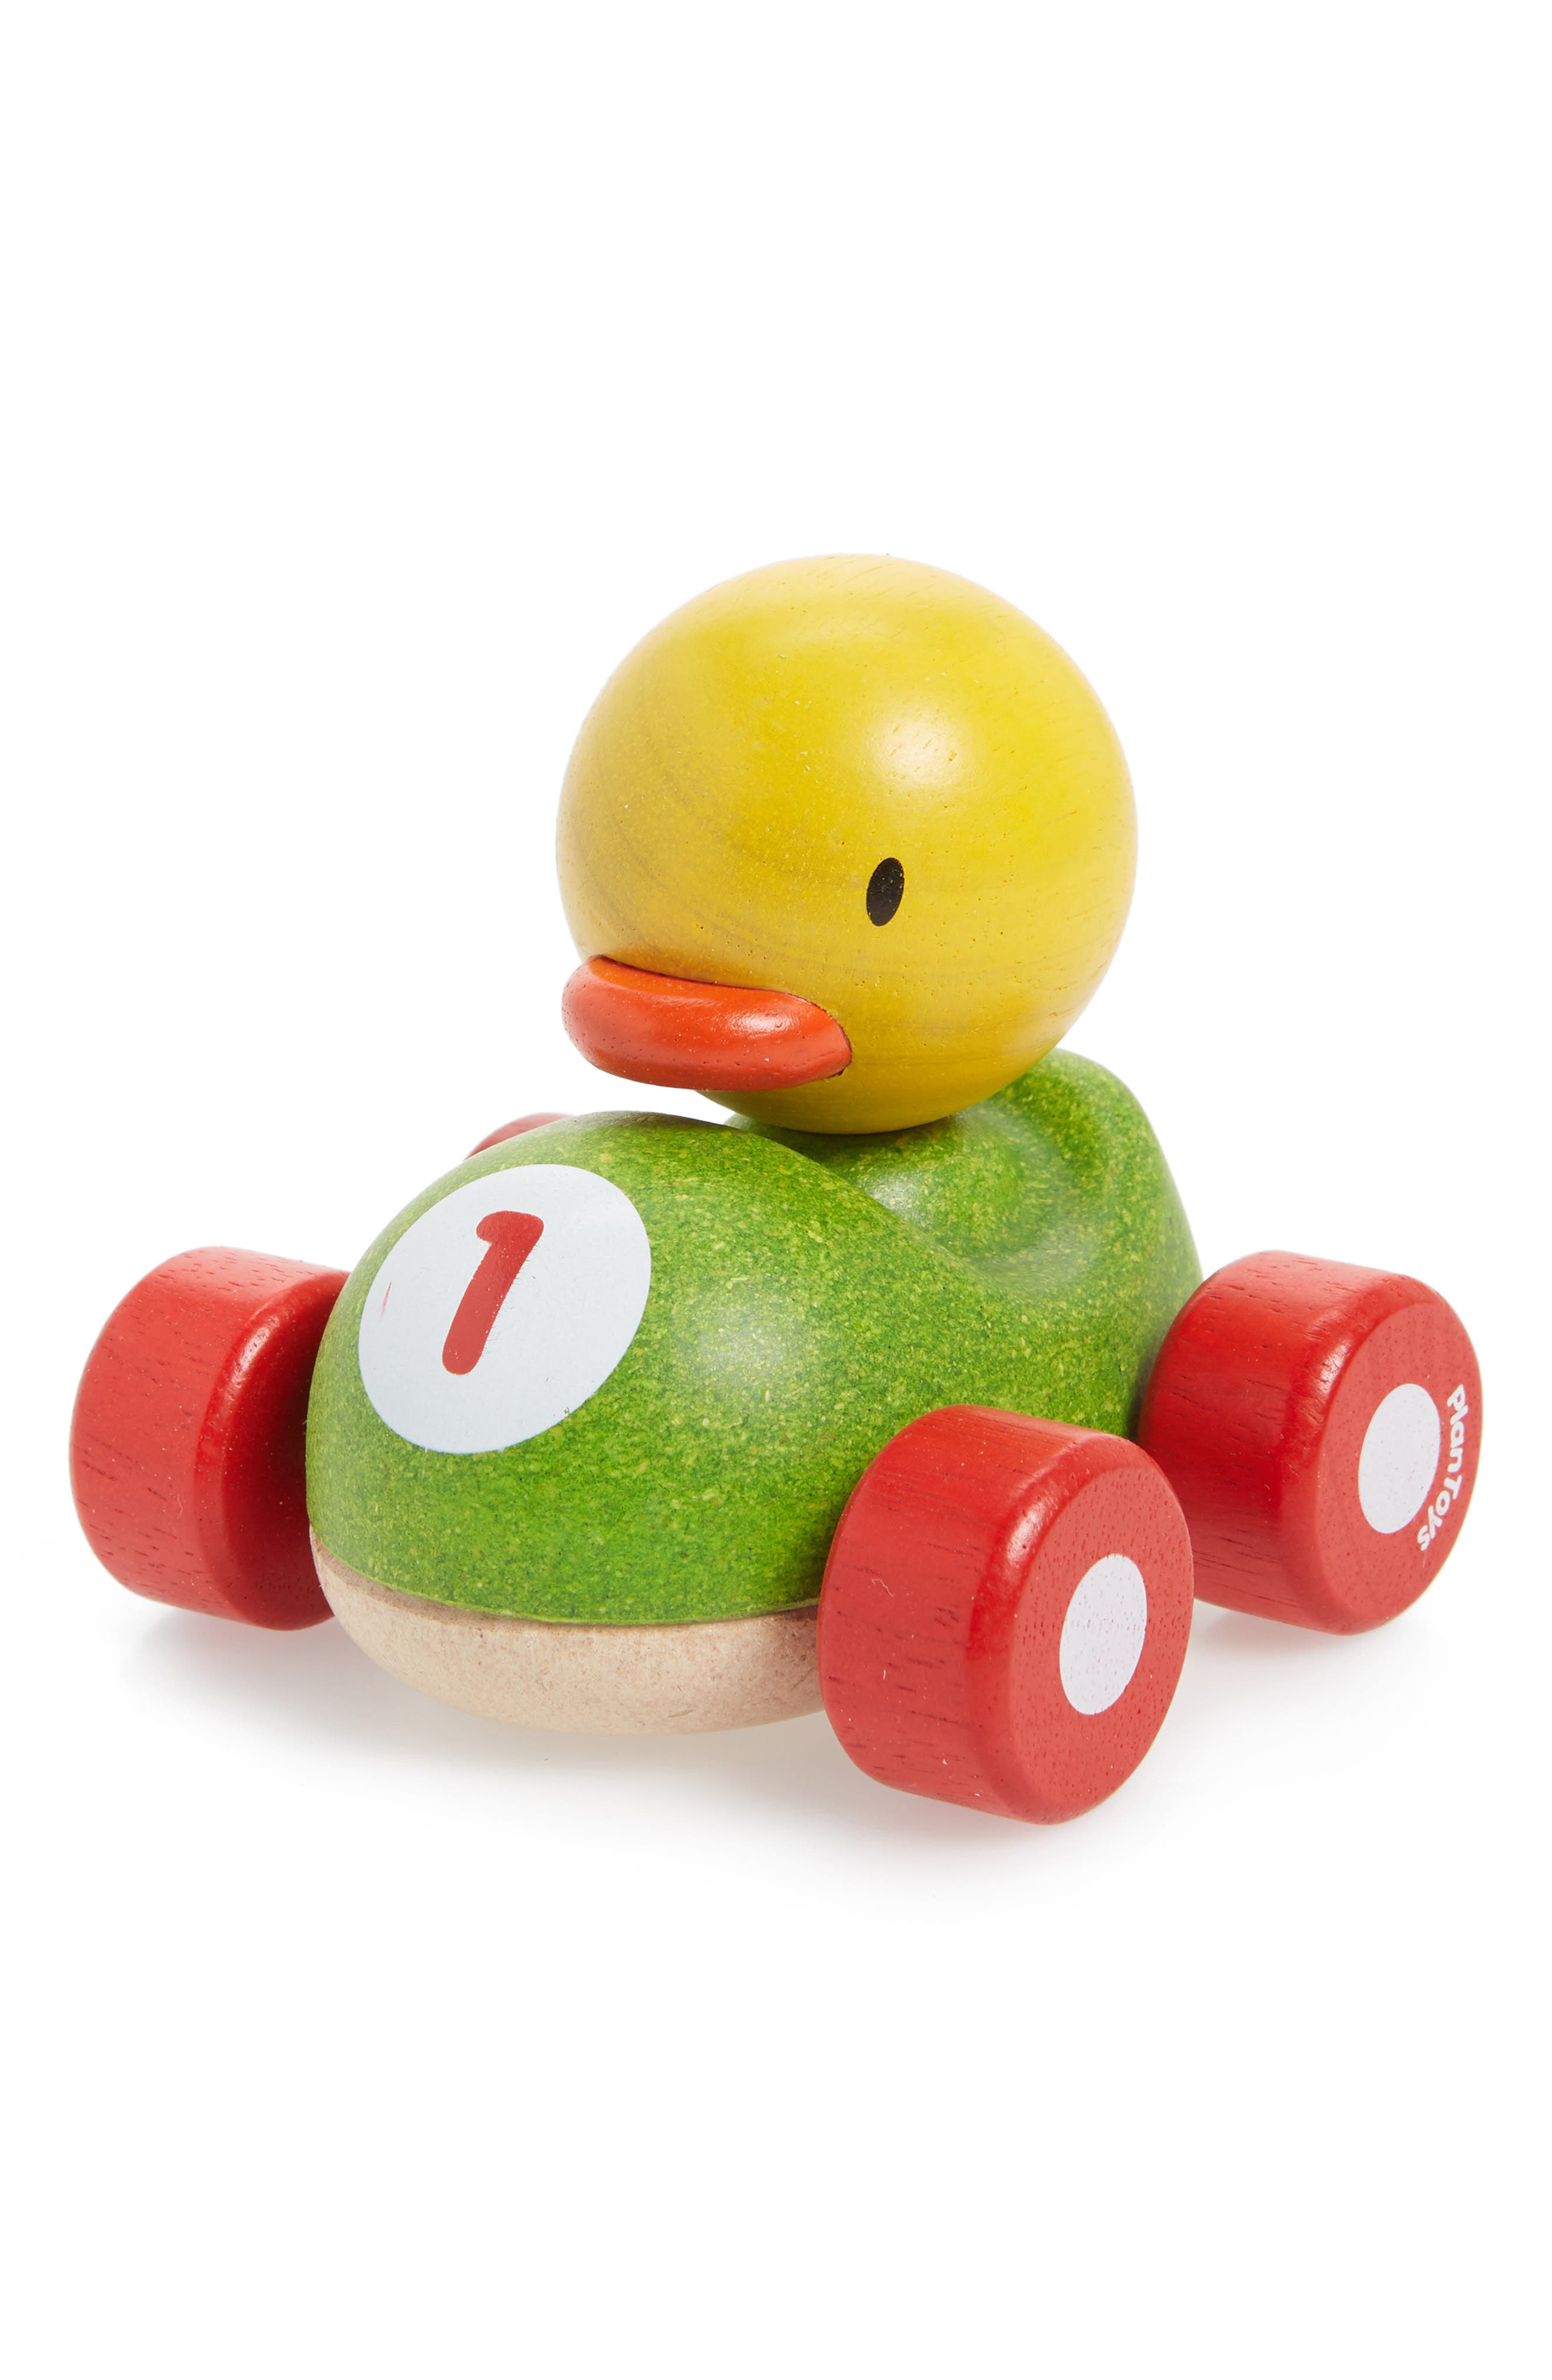 Plan Toys<sup>®</sup> Duck Racer Rolling Toy,                             Main thumbnail 1, color,                             300